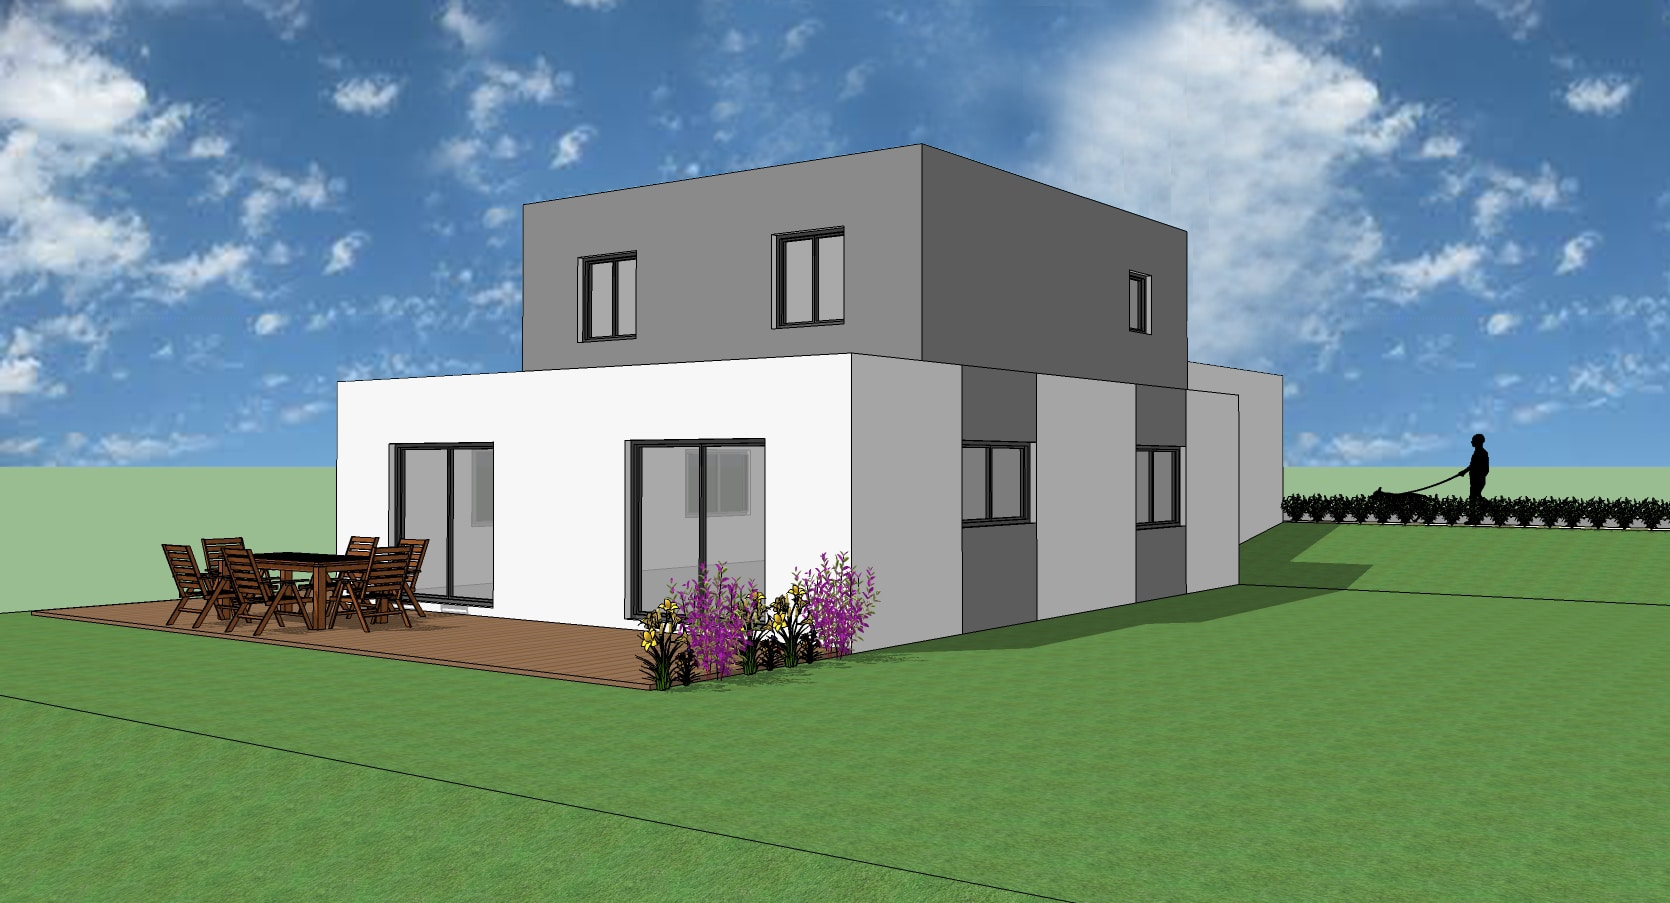 Projet de construction d 39 une maison moderne for Construction maison moderne